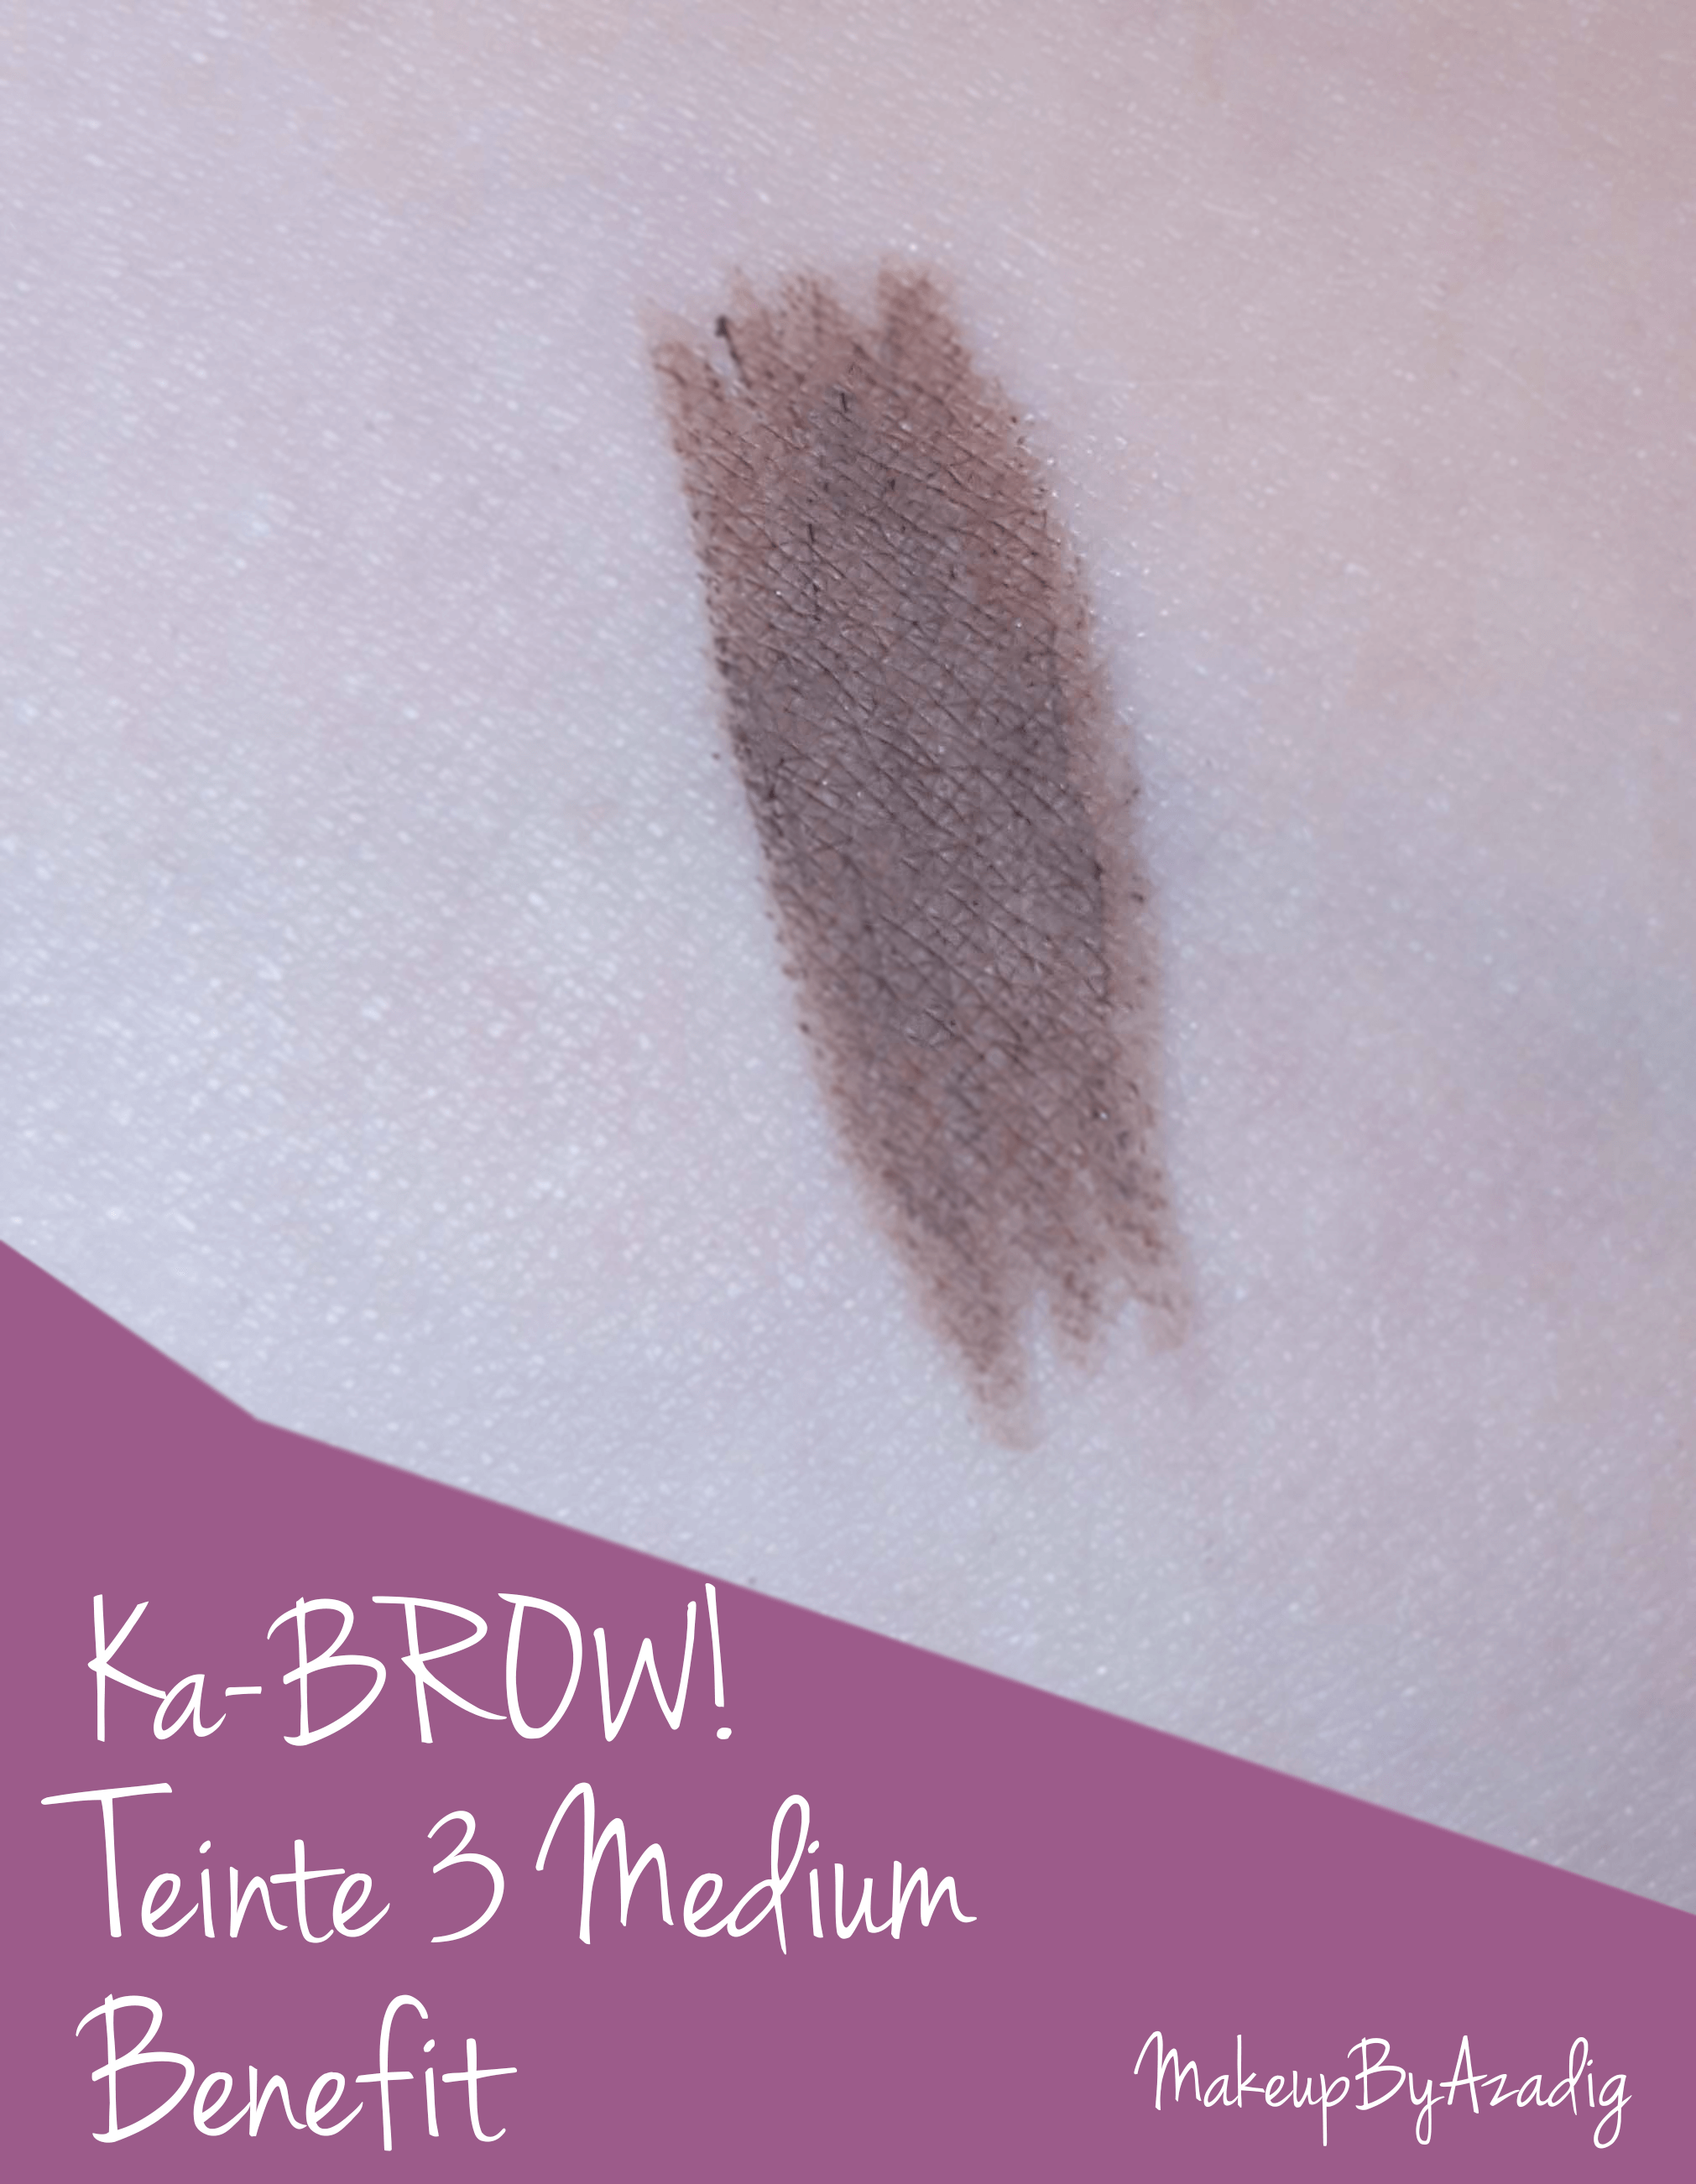 ka-brow-gel-creme-coloration-sourcils-benefit-makeupbyazadig-paris-blog-revue-avis-prix-enjoyphoenix-swatch